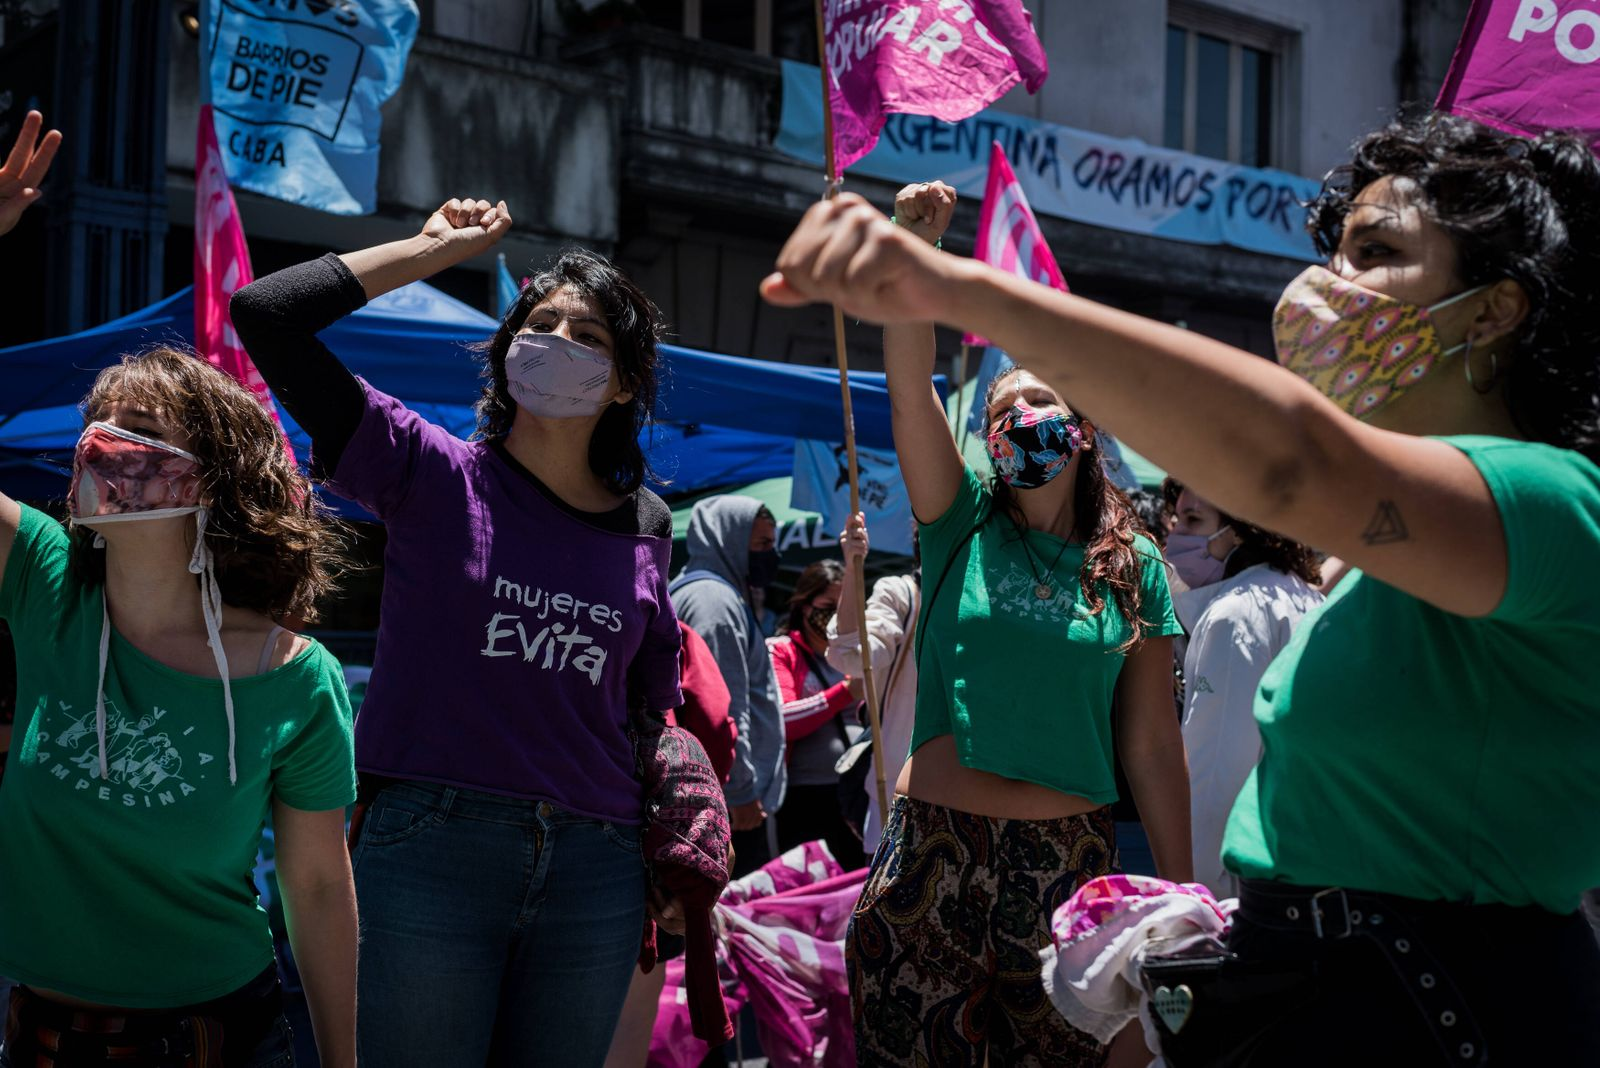 During the day, different activities took place and health professionals and teachers called for legal abortion PUBLICA